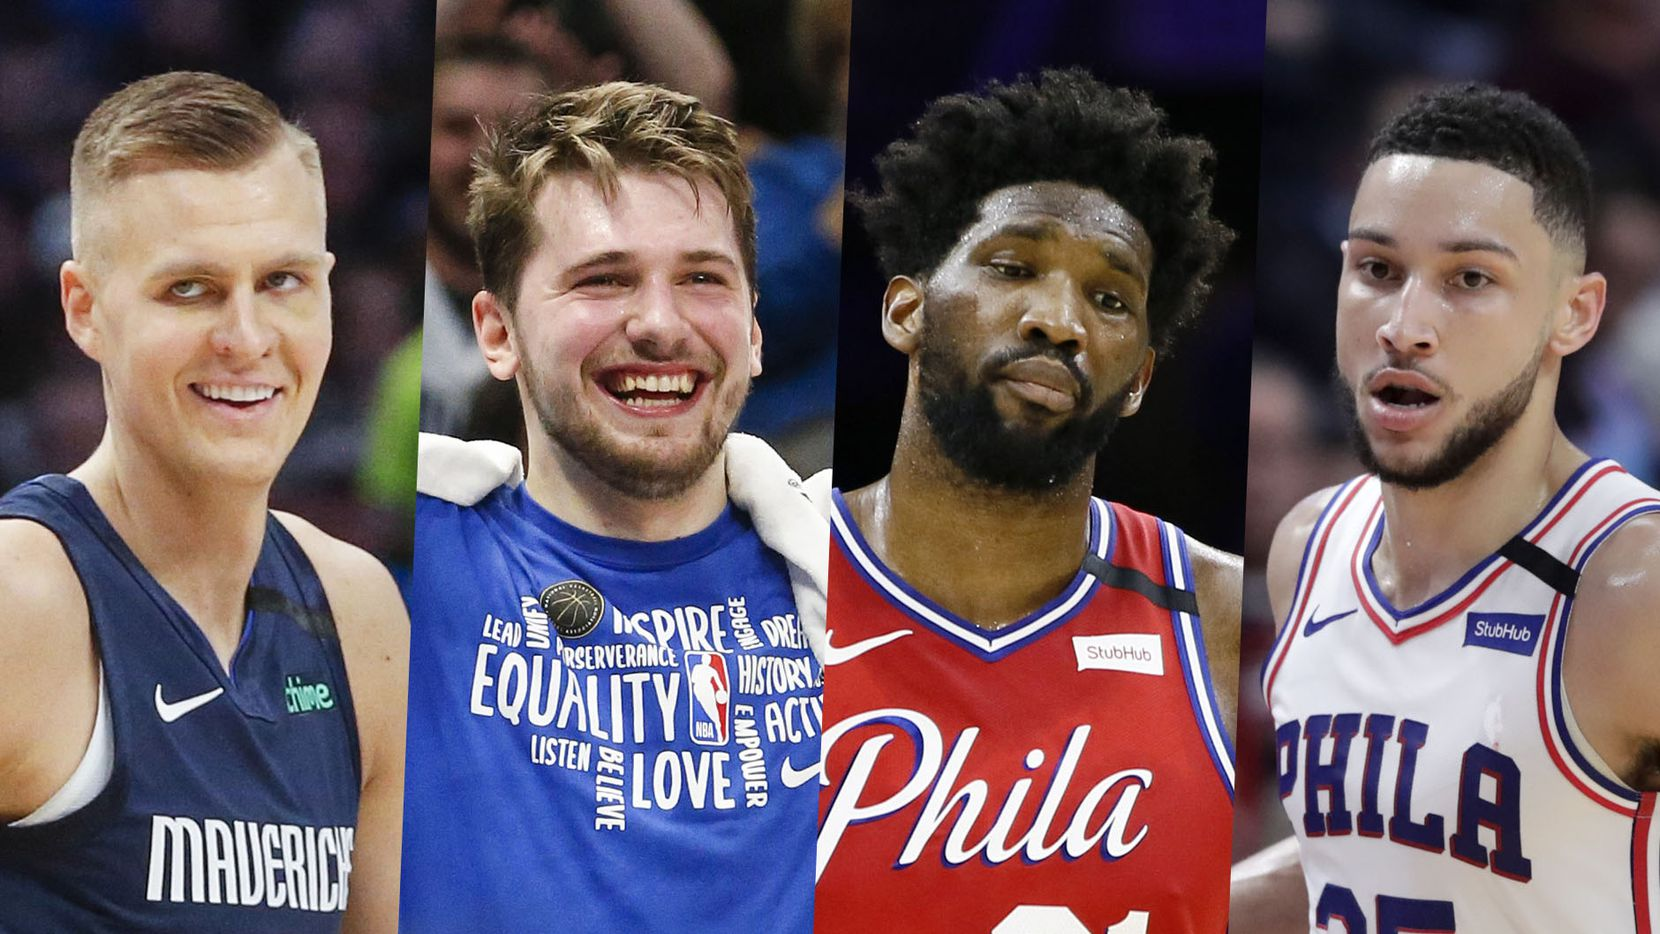 From left to right: Kristaps Porzingis, Luka Doncic, Joel Embiid, Ben Simmons.